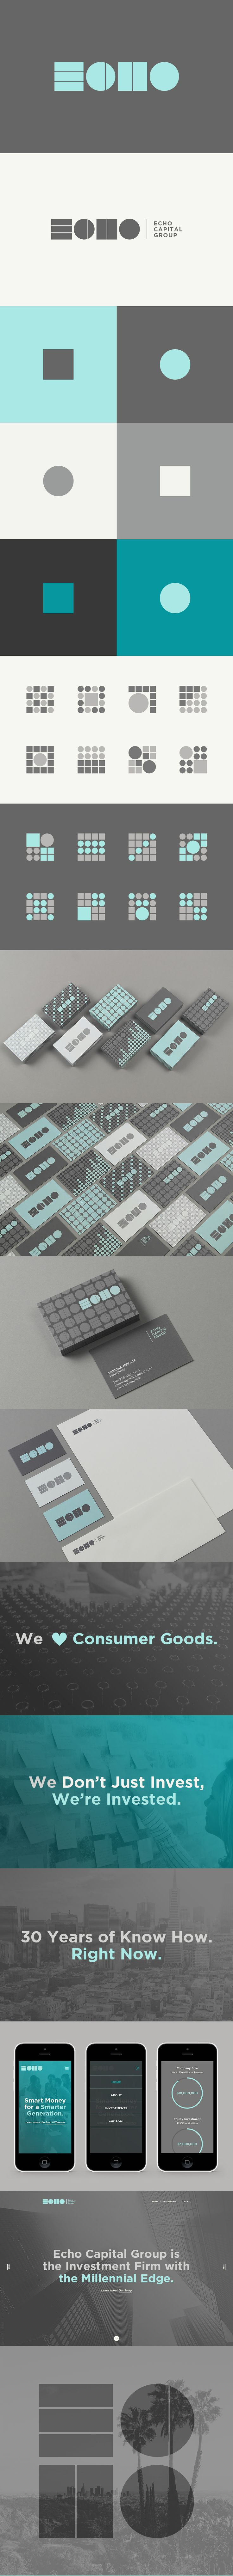 Brand Identity for Echo Capital Group, the Investment Firm with the Millennial Edge -- Logo, Icons, Animations, Responsive Website, Content Creation, Copywriting, MOO Cards -- http://echocapital.com